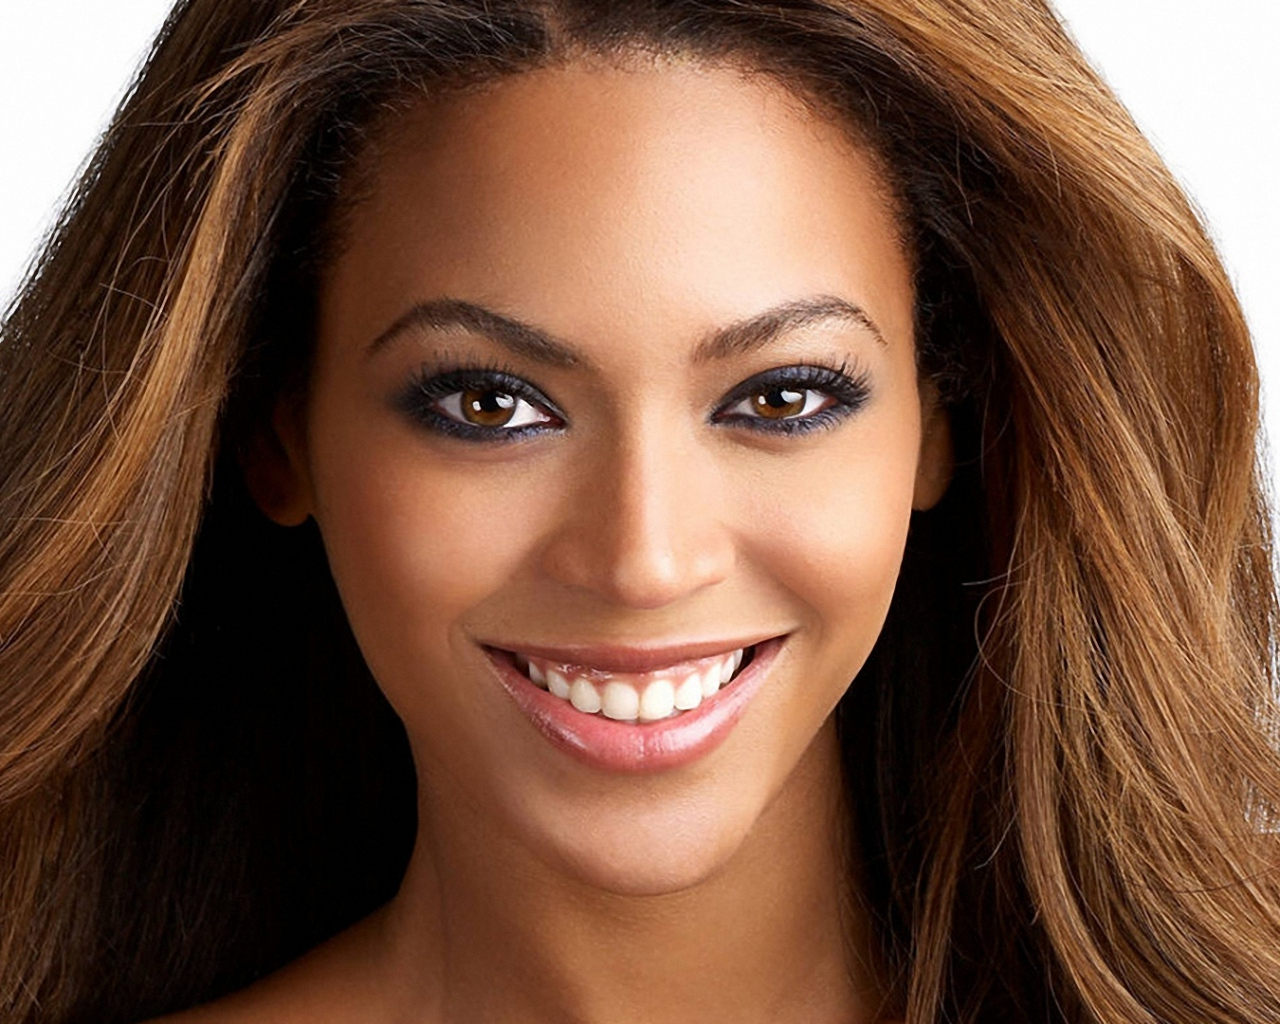 beyonce_smile_face_lips_hair_5905_1280x1024